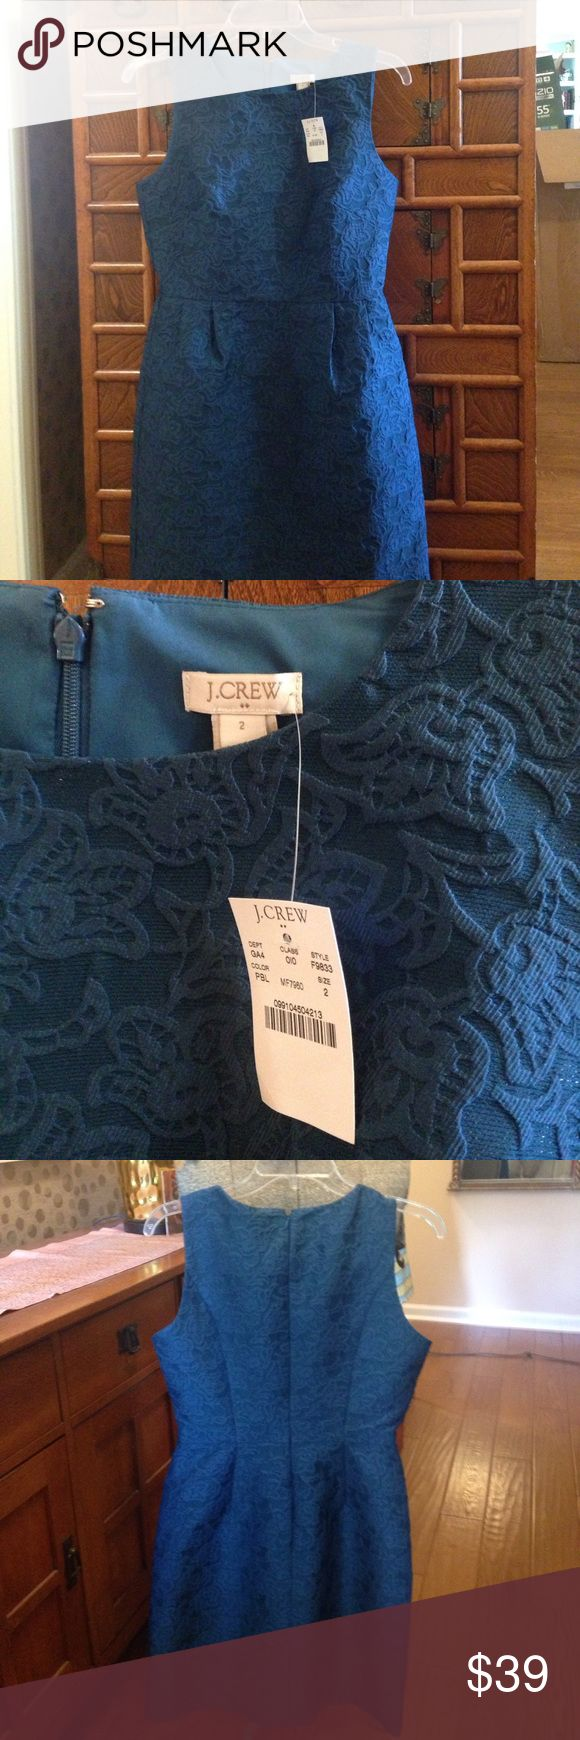 JCrew, never worn, size 2 ladies sleeveless dress. Turquoise blue beautiful, never worn, sleeveless dress. Size 2.  Stops at knee. New with tags.  Would work perfect alone or with a shirt under it. Beautiful jacquard fabric. Gentle wash no drying or dry clean. Must see to believe the beauty of this dress. J Crew Dresses Midi